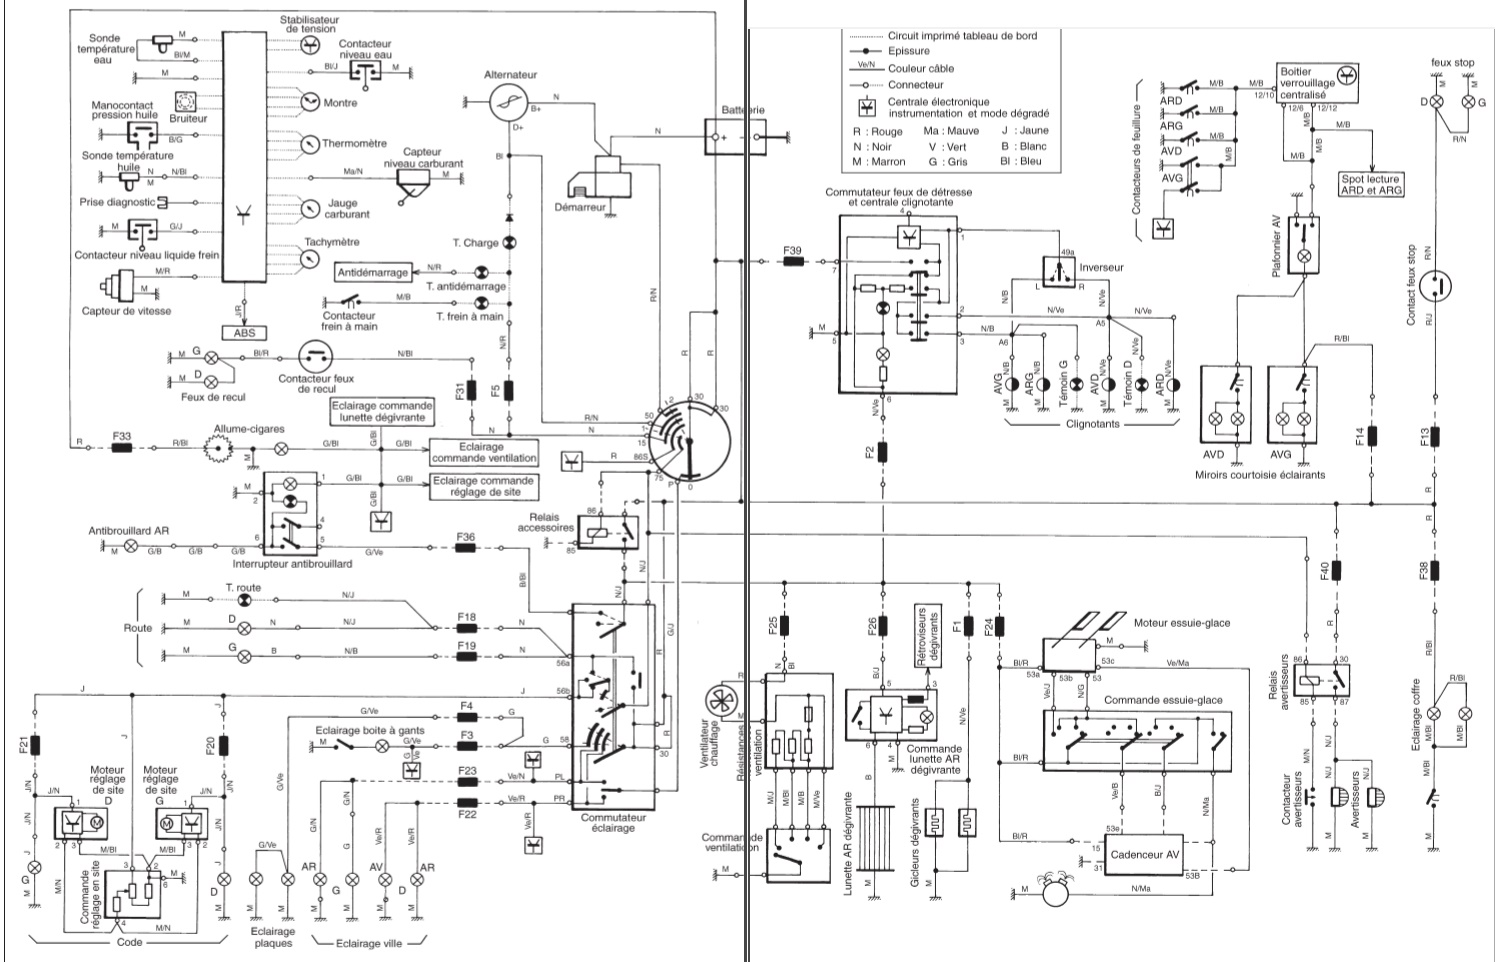 [DIAGRAM] Audi S3 8p Wiring Diagram FULL Version HD